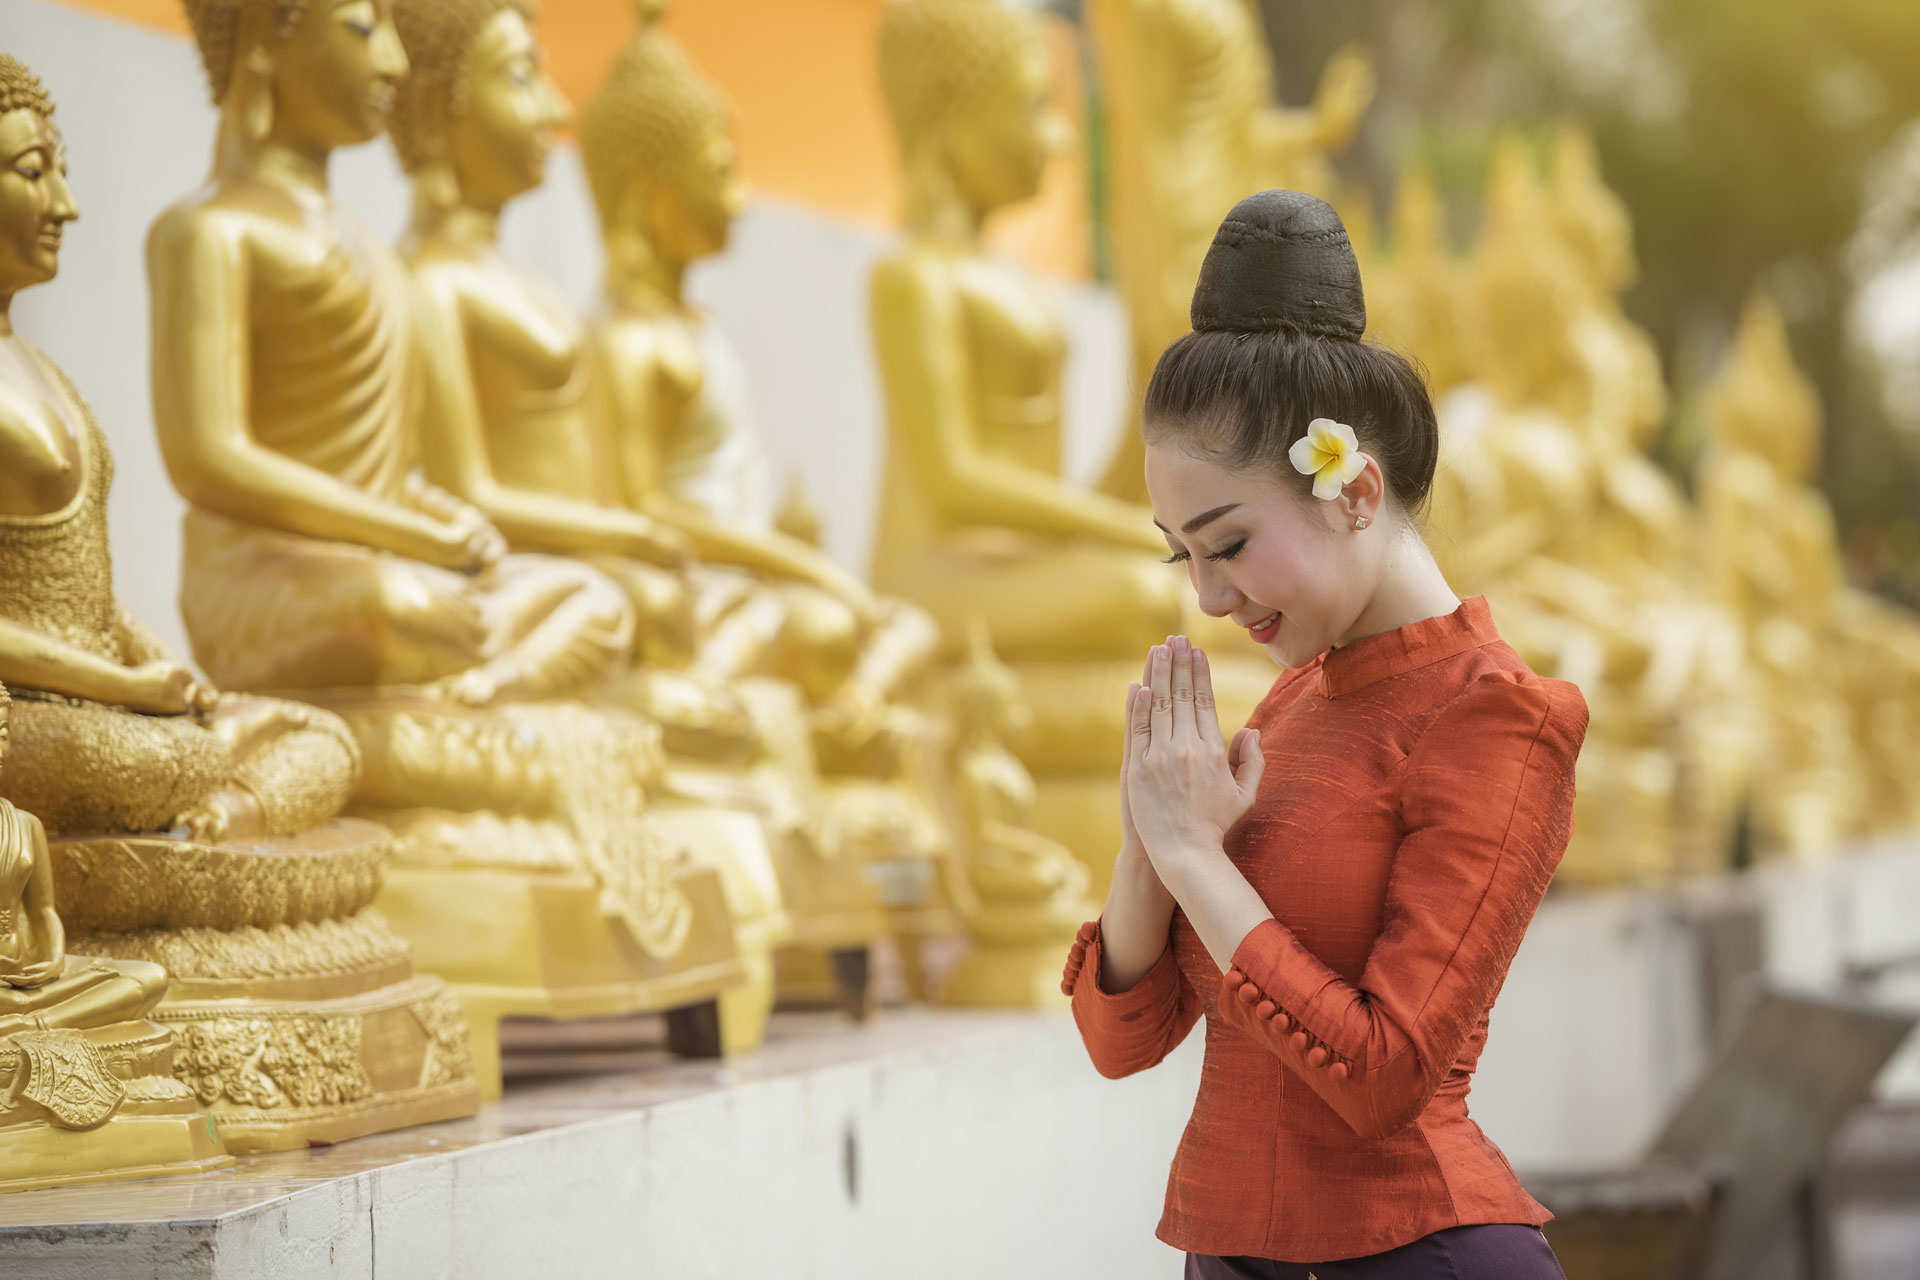 asian woman in front of many gold statues